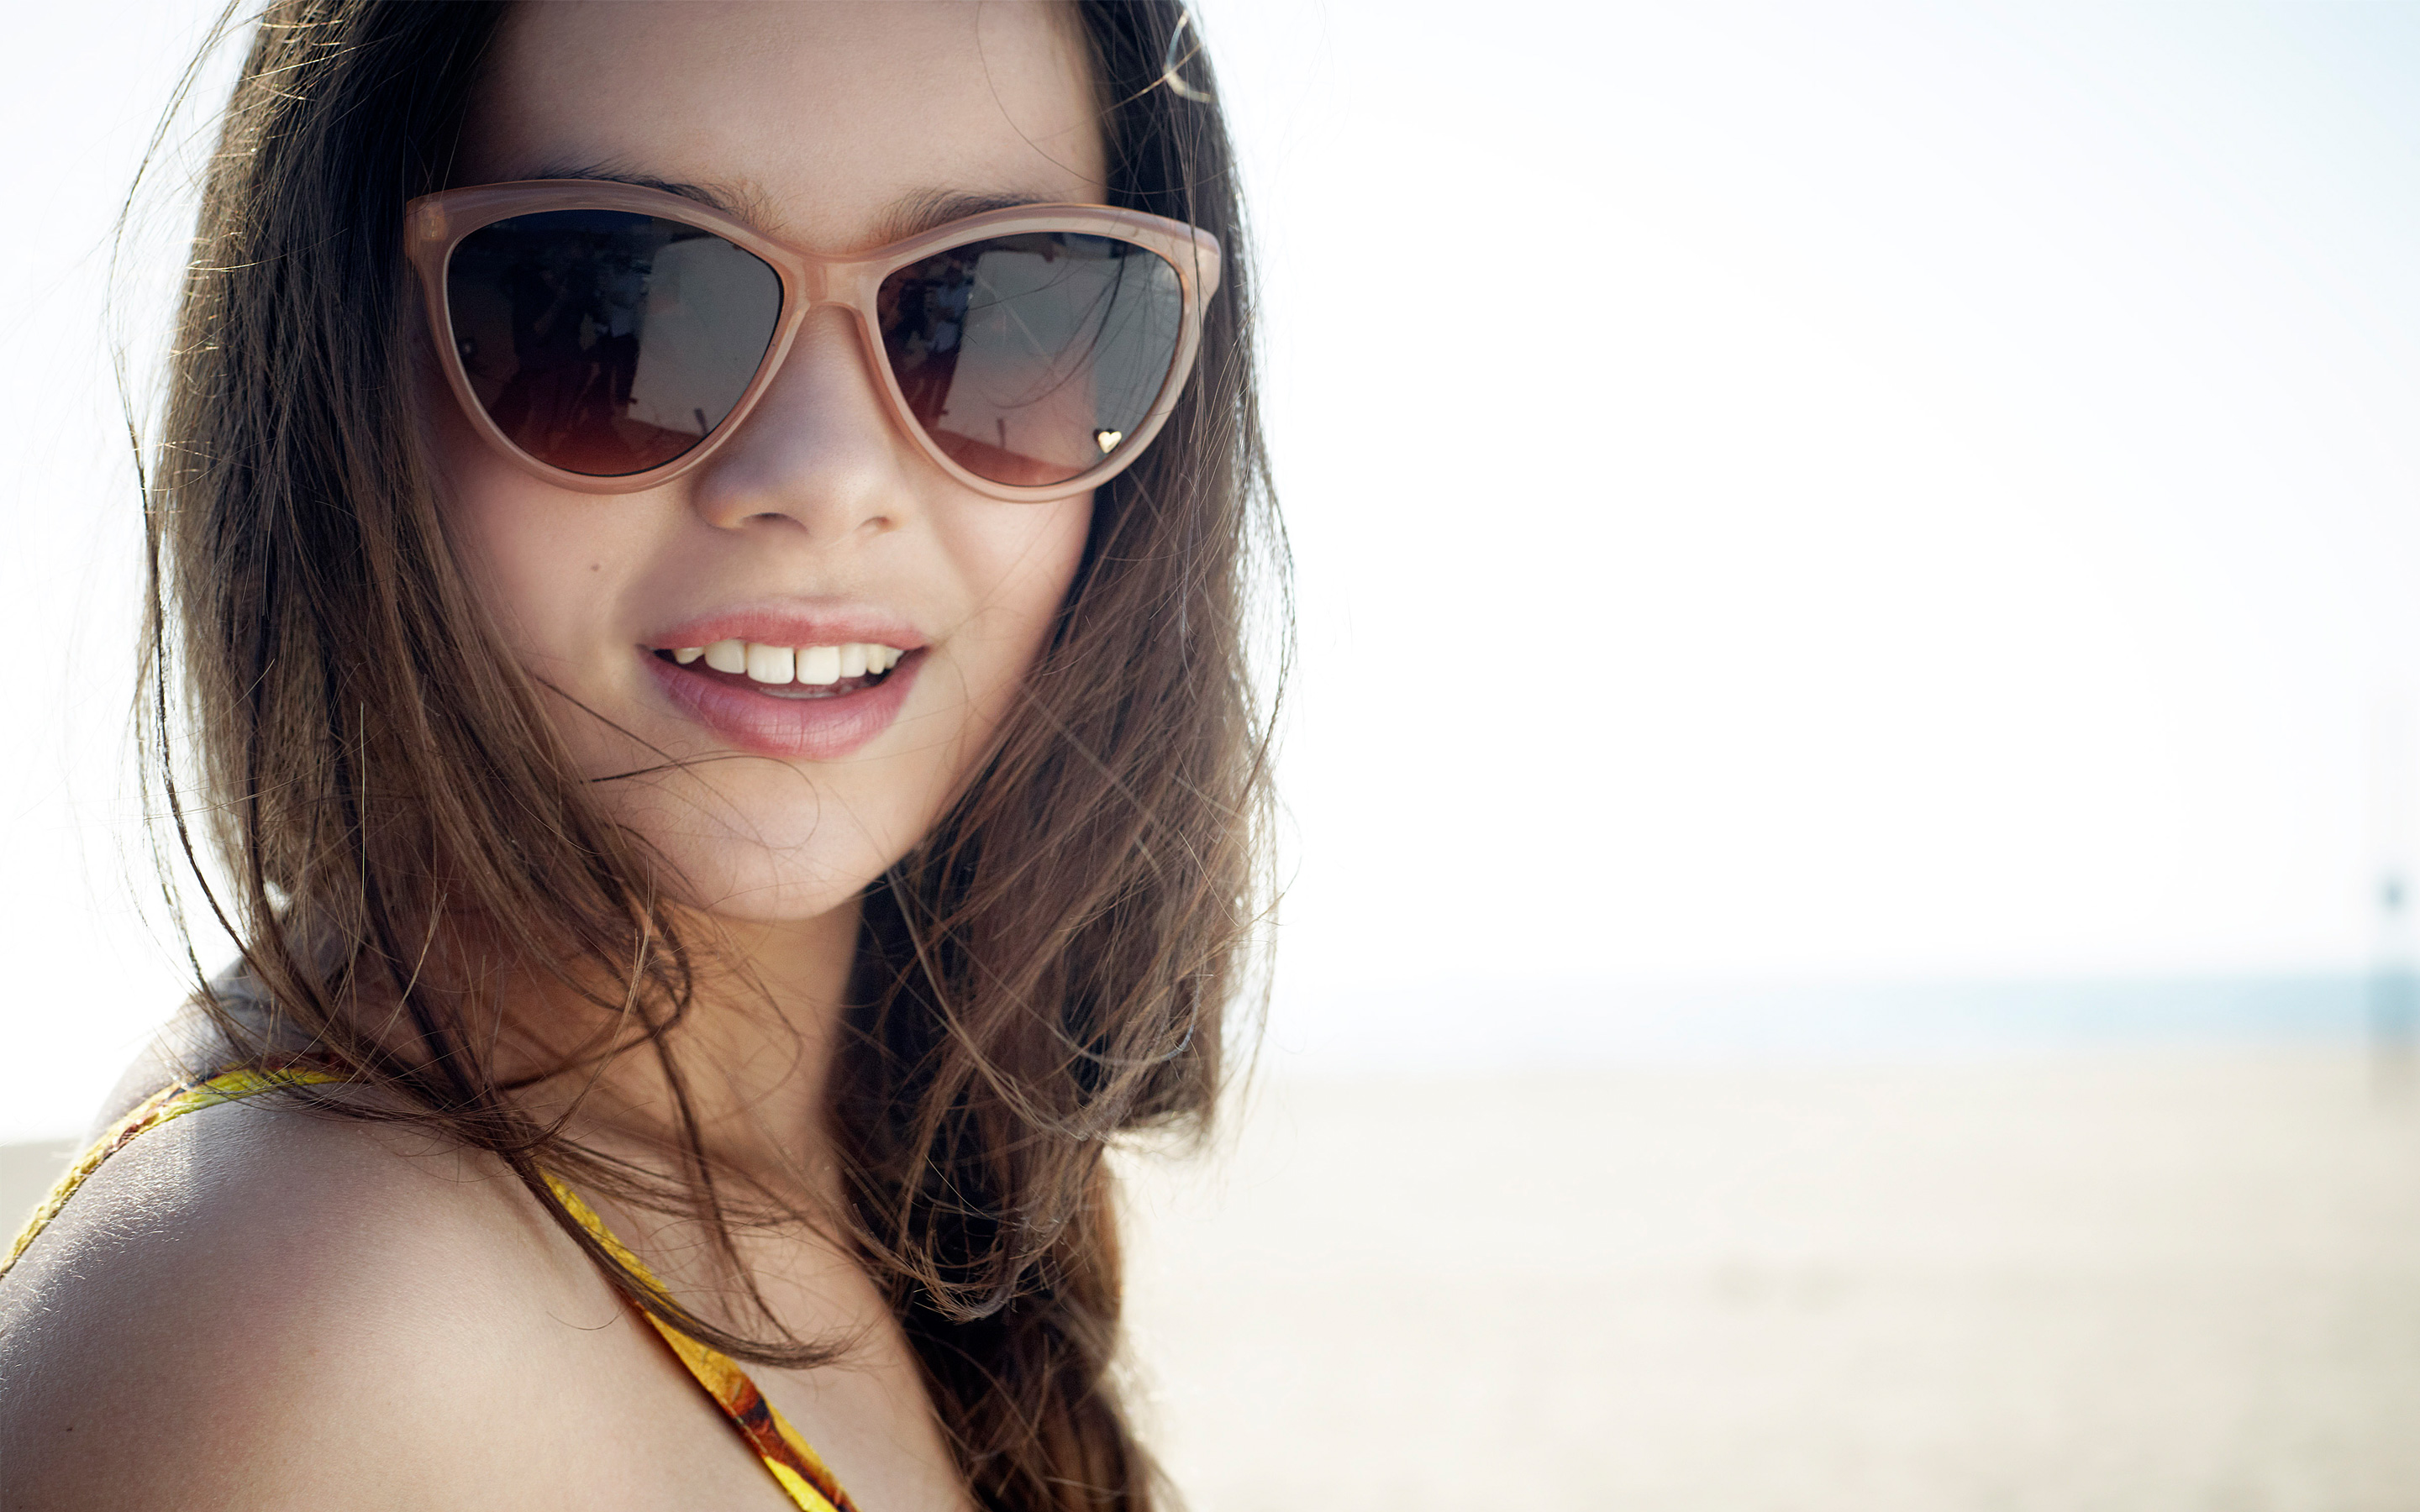 hailee steinfeld sunglasses widescreen wallpaper 61967